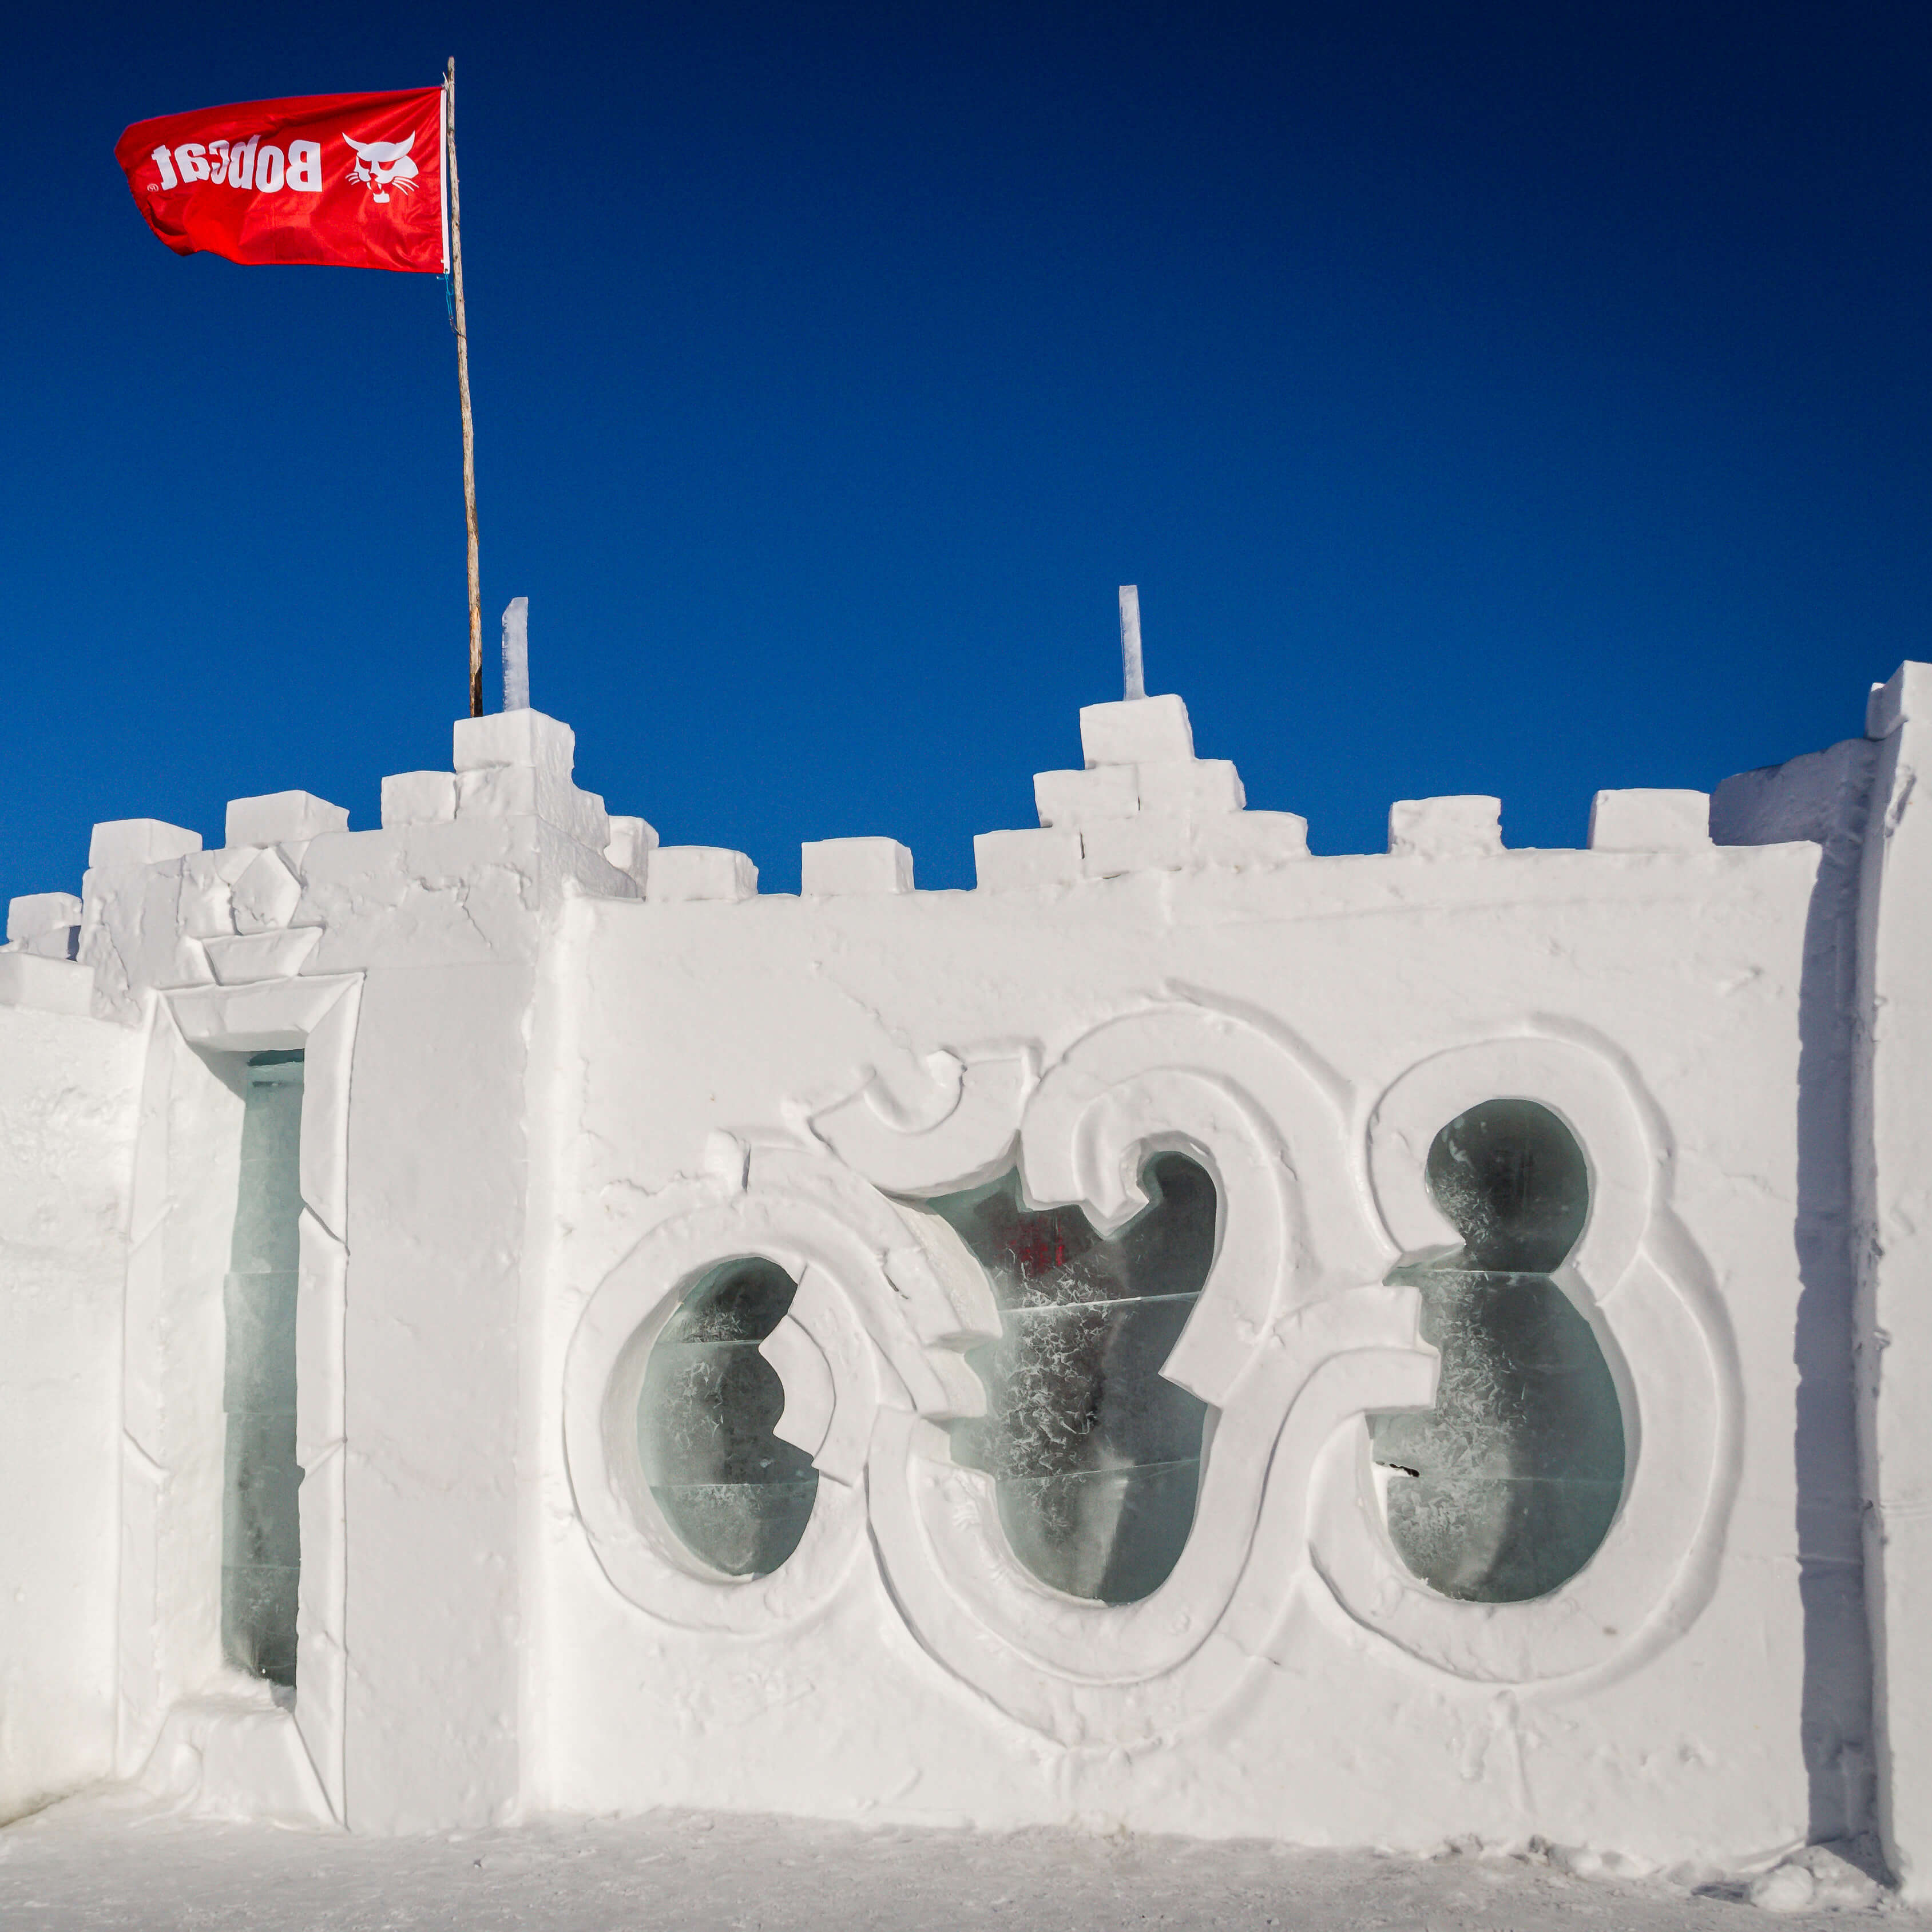 The Snowkings Winter Festival famous Snow Castle in Yellowknife、NWT